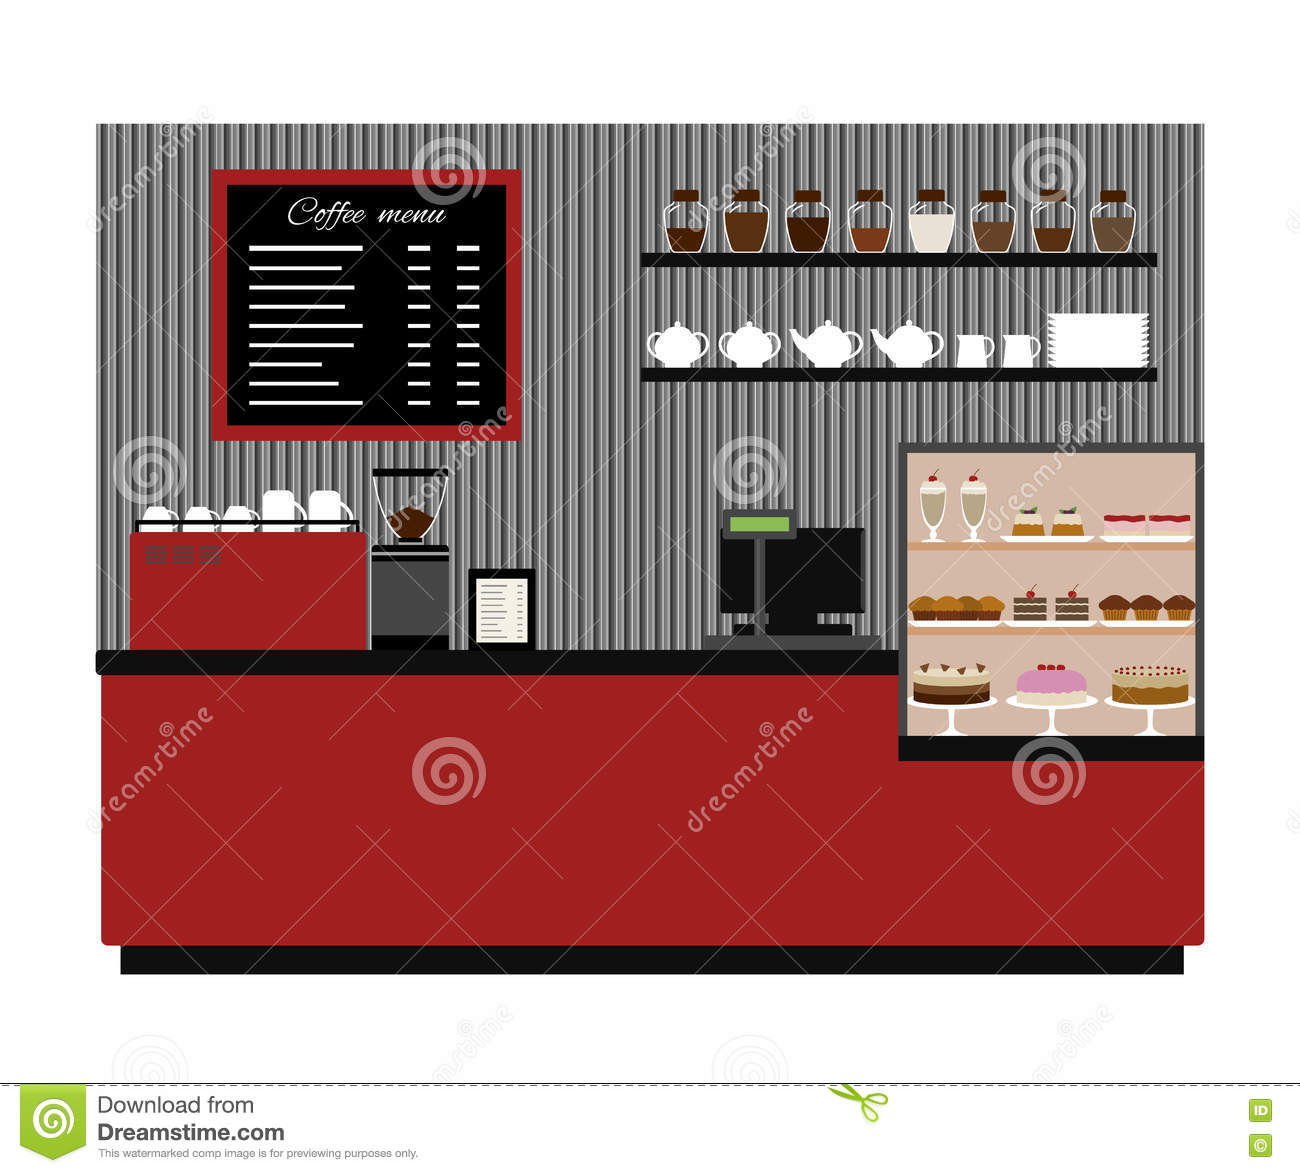 Coffee Shop Interior Black And White Illustration Royalty